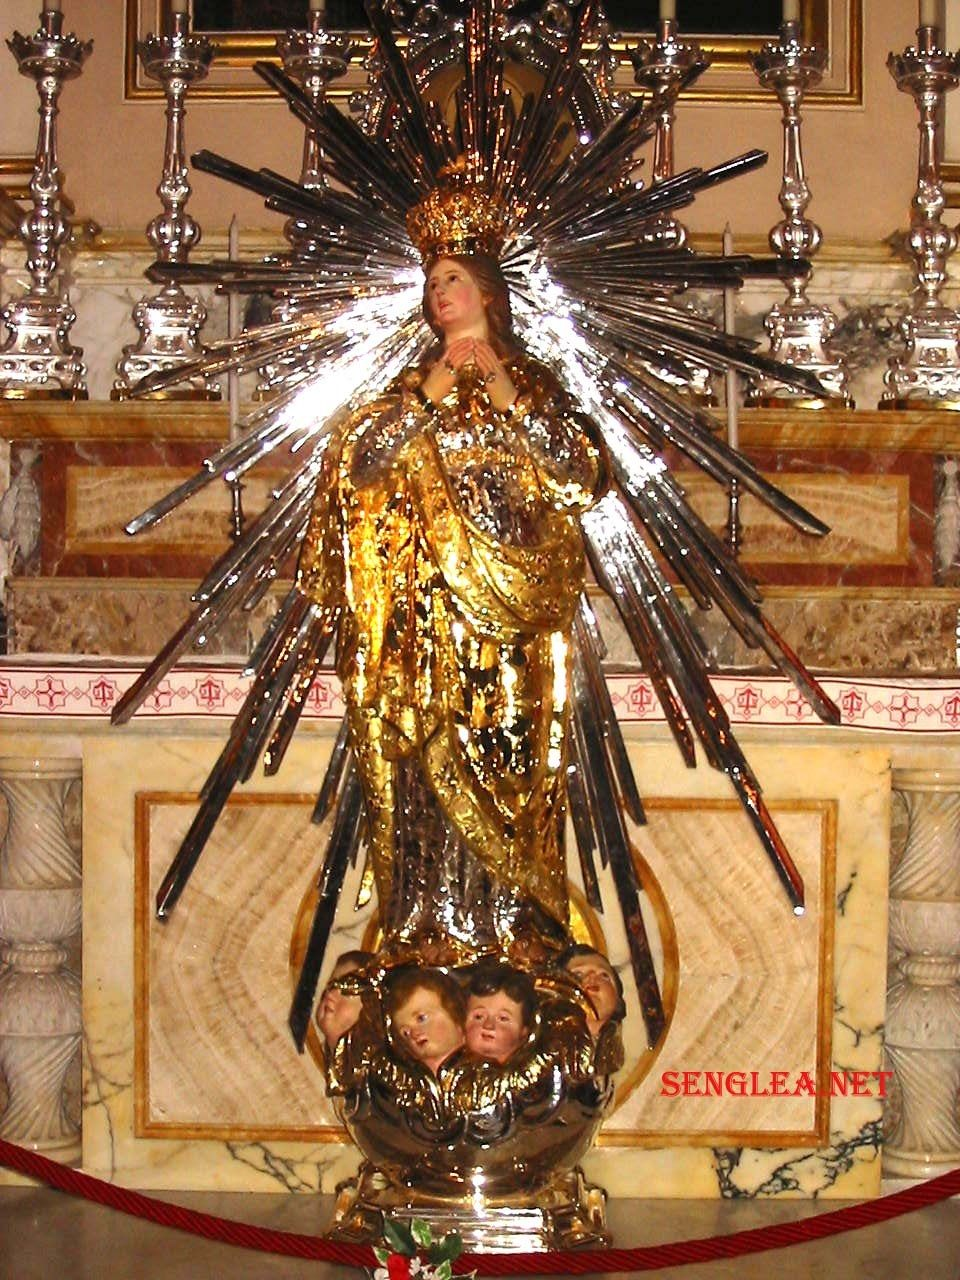 The Statue of Our Lady of Victories venerated at the Sanctuary Basilica of Our Lady's Nativity in Senglea, Malta where it has reputed to have been located since 1618 after it had been found floating amongst other wreckage and picked up in the Adriatic Sea.